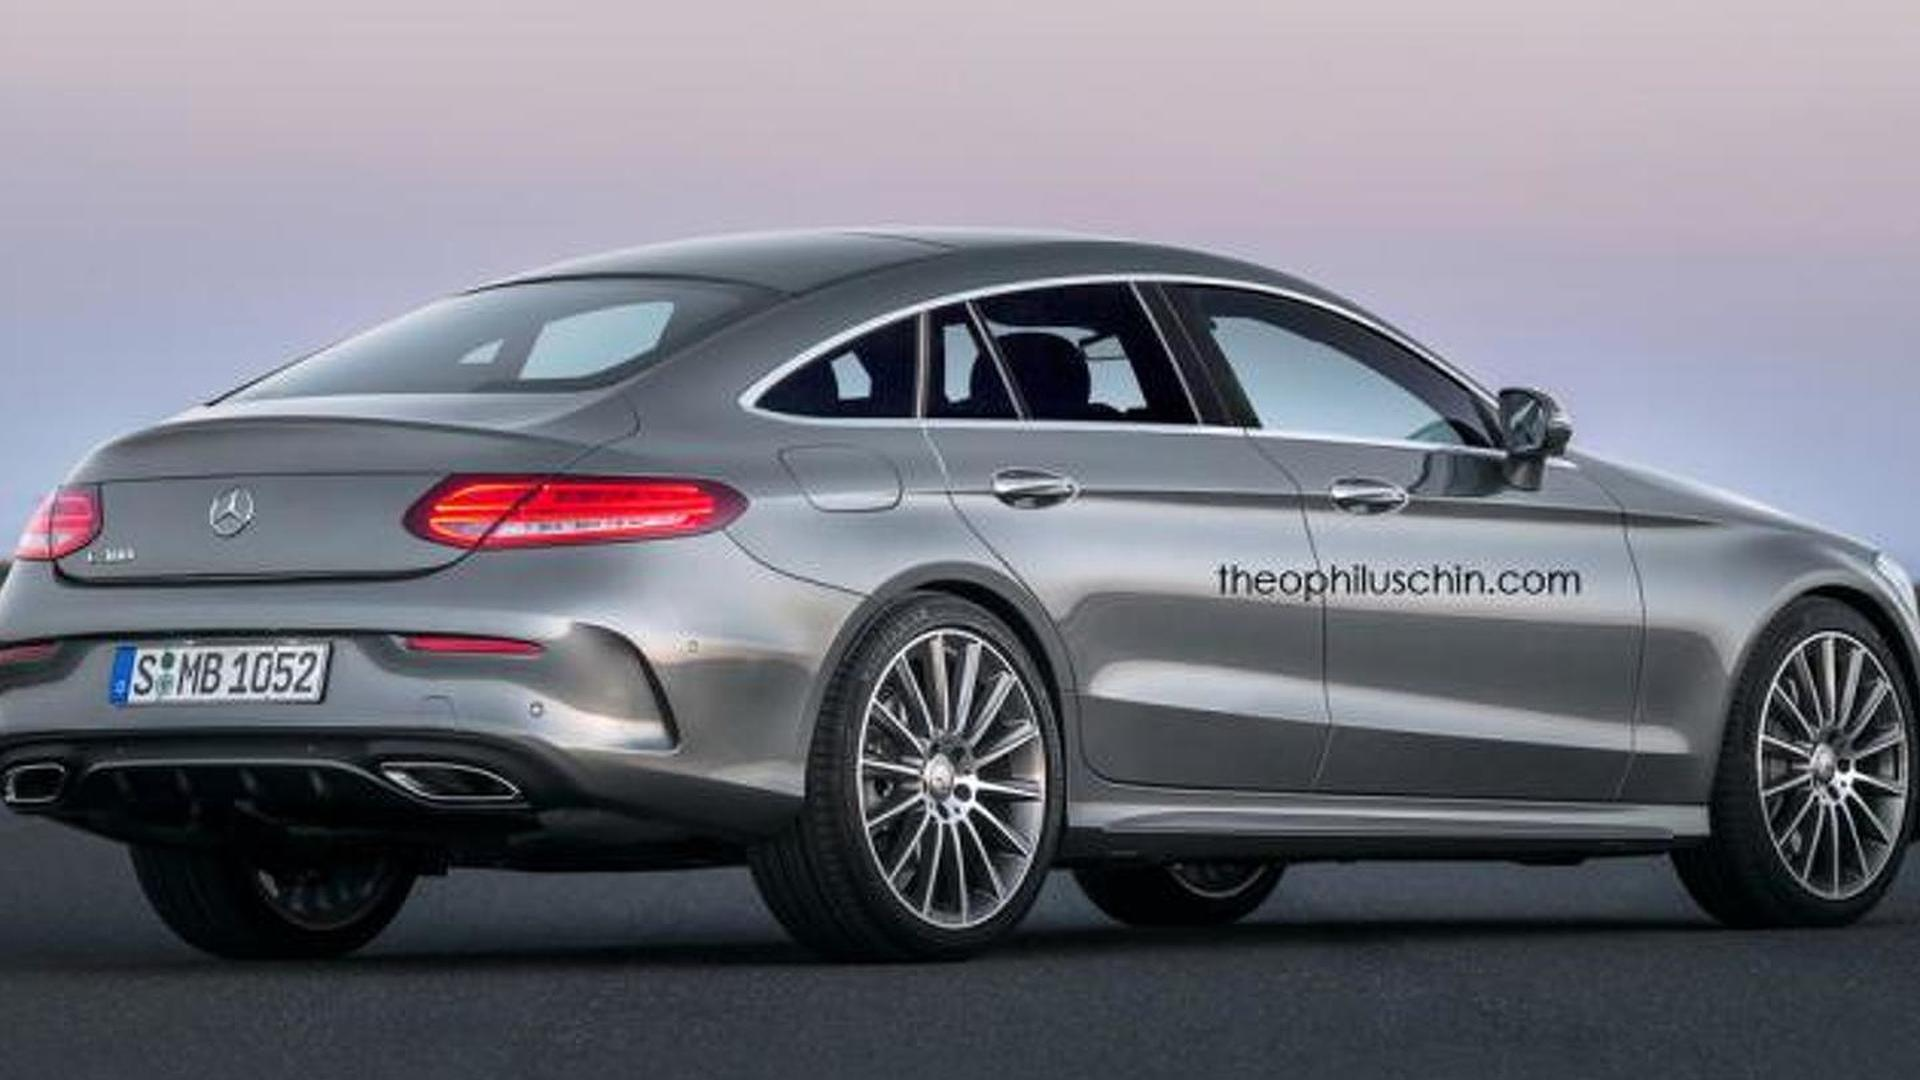 Mercedes benz clc four door coupe rendered based on c class coupe - Mercedes clc coupe for sale ...